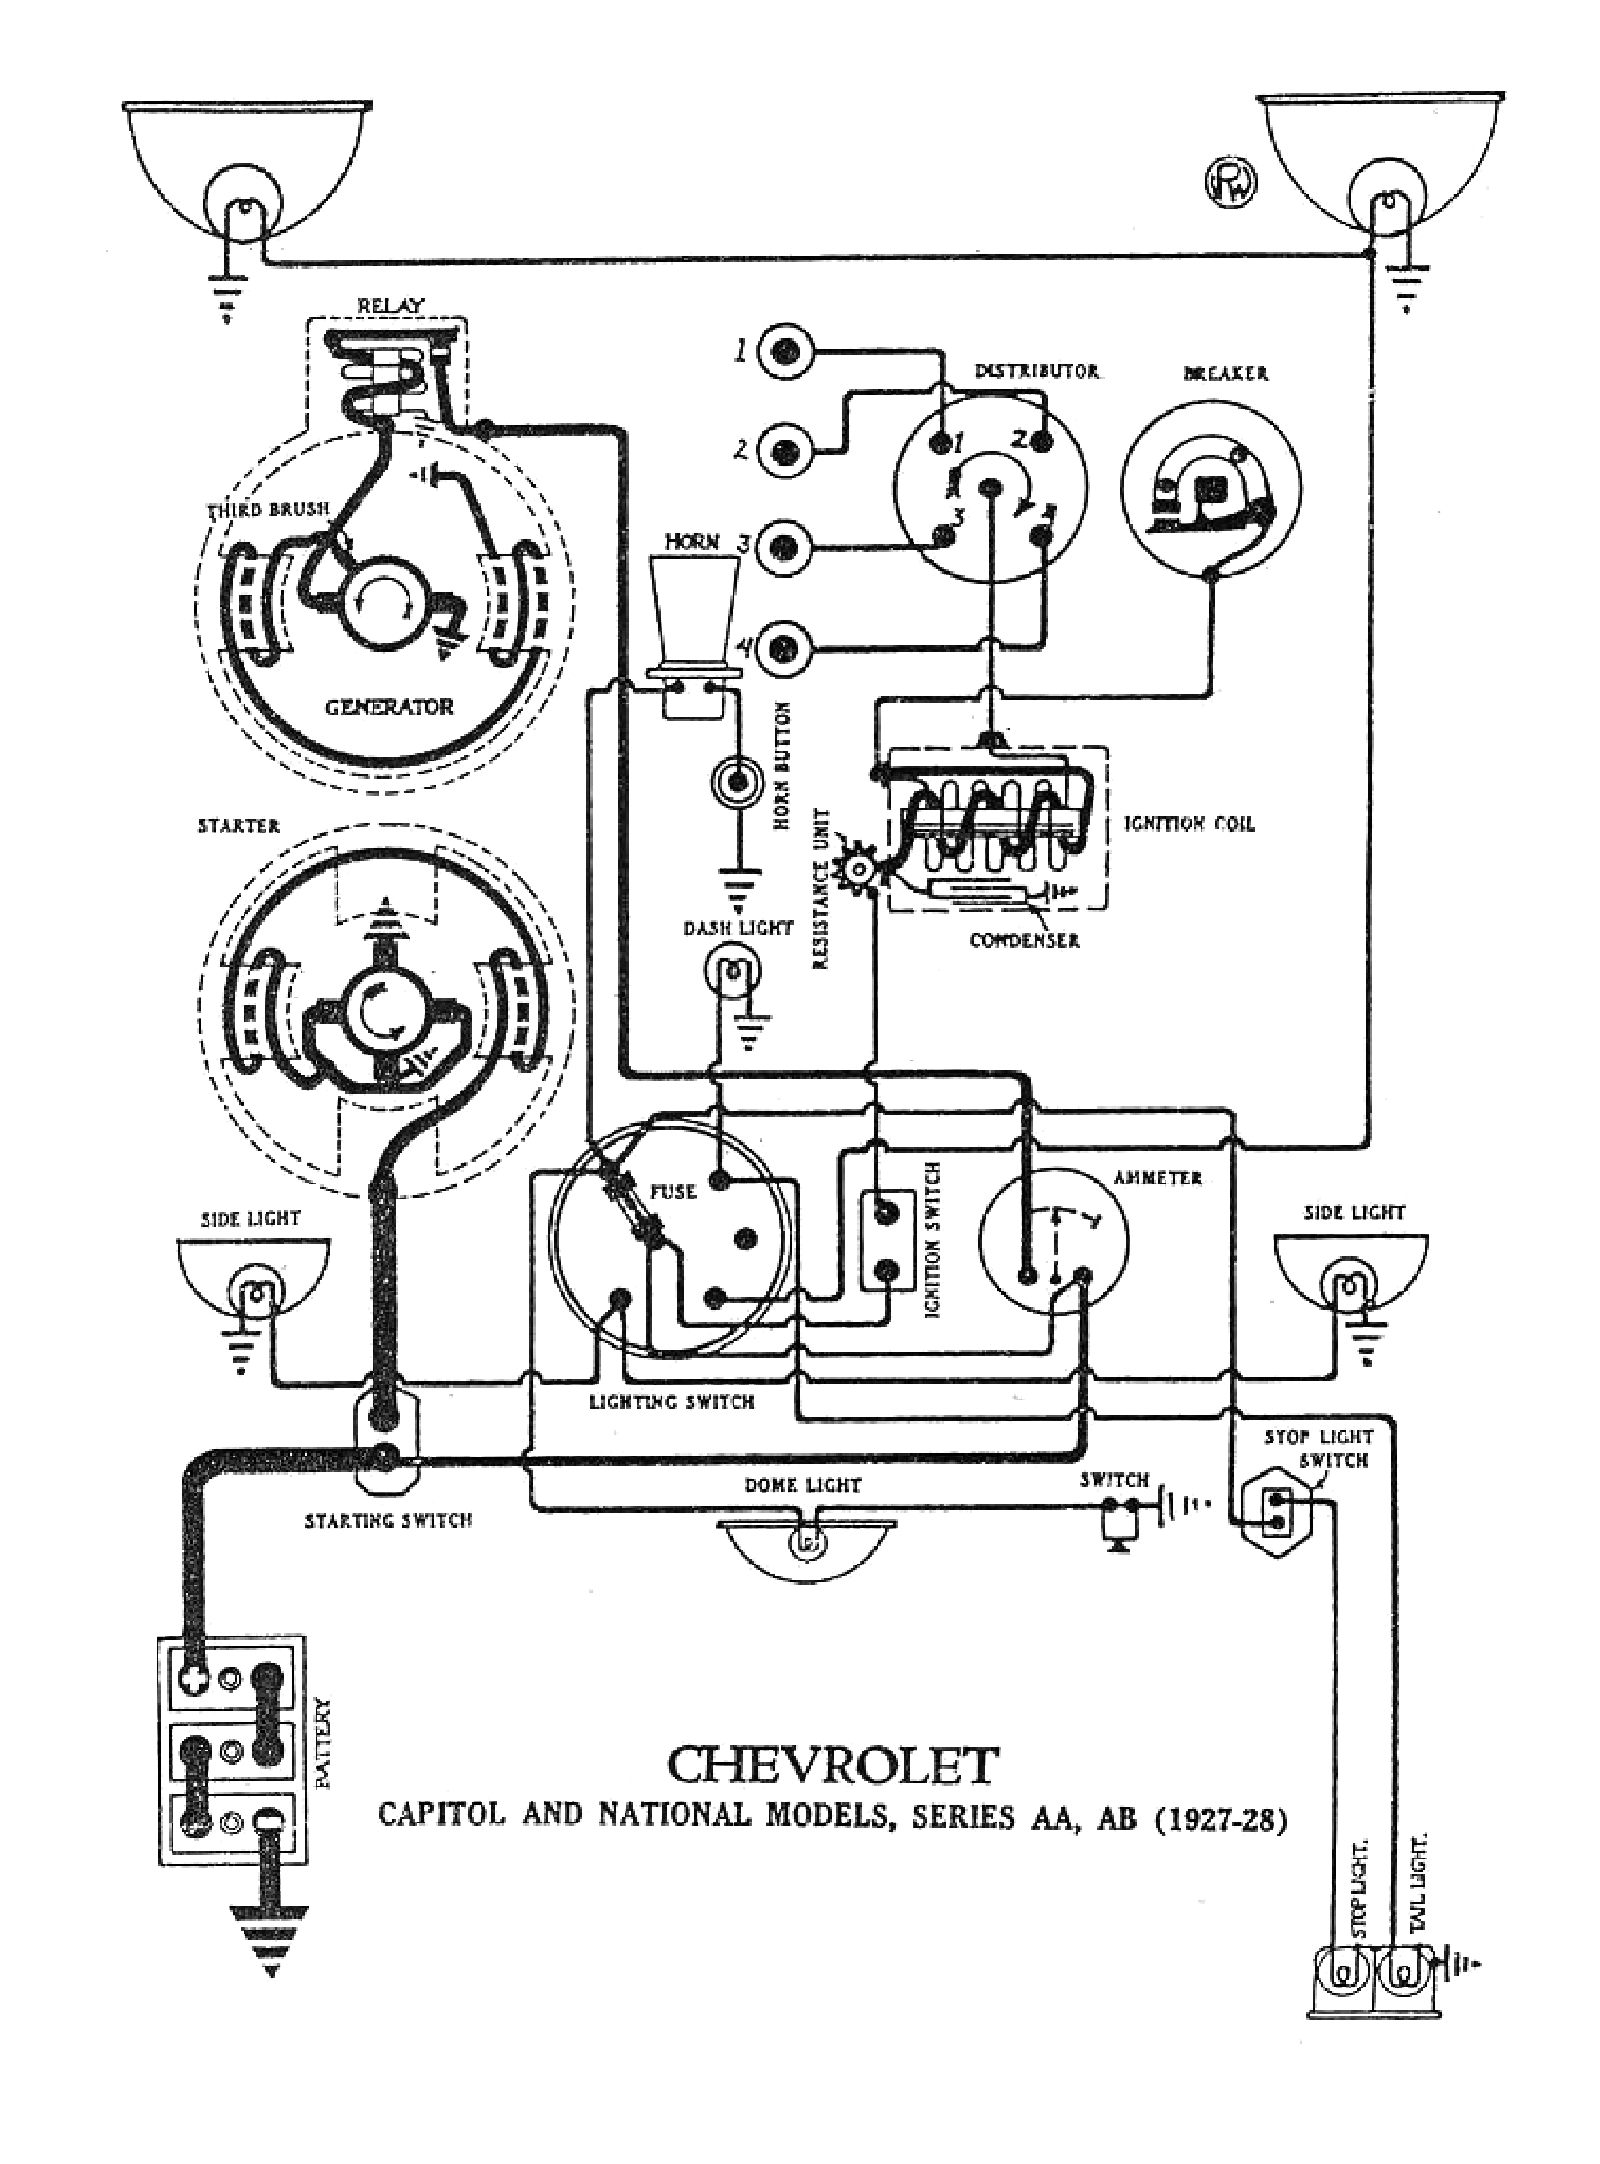 chevy wiring diagrams 1928 capitol national